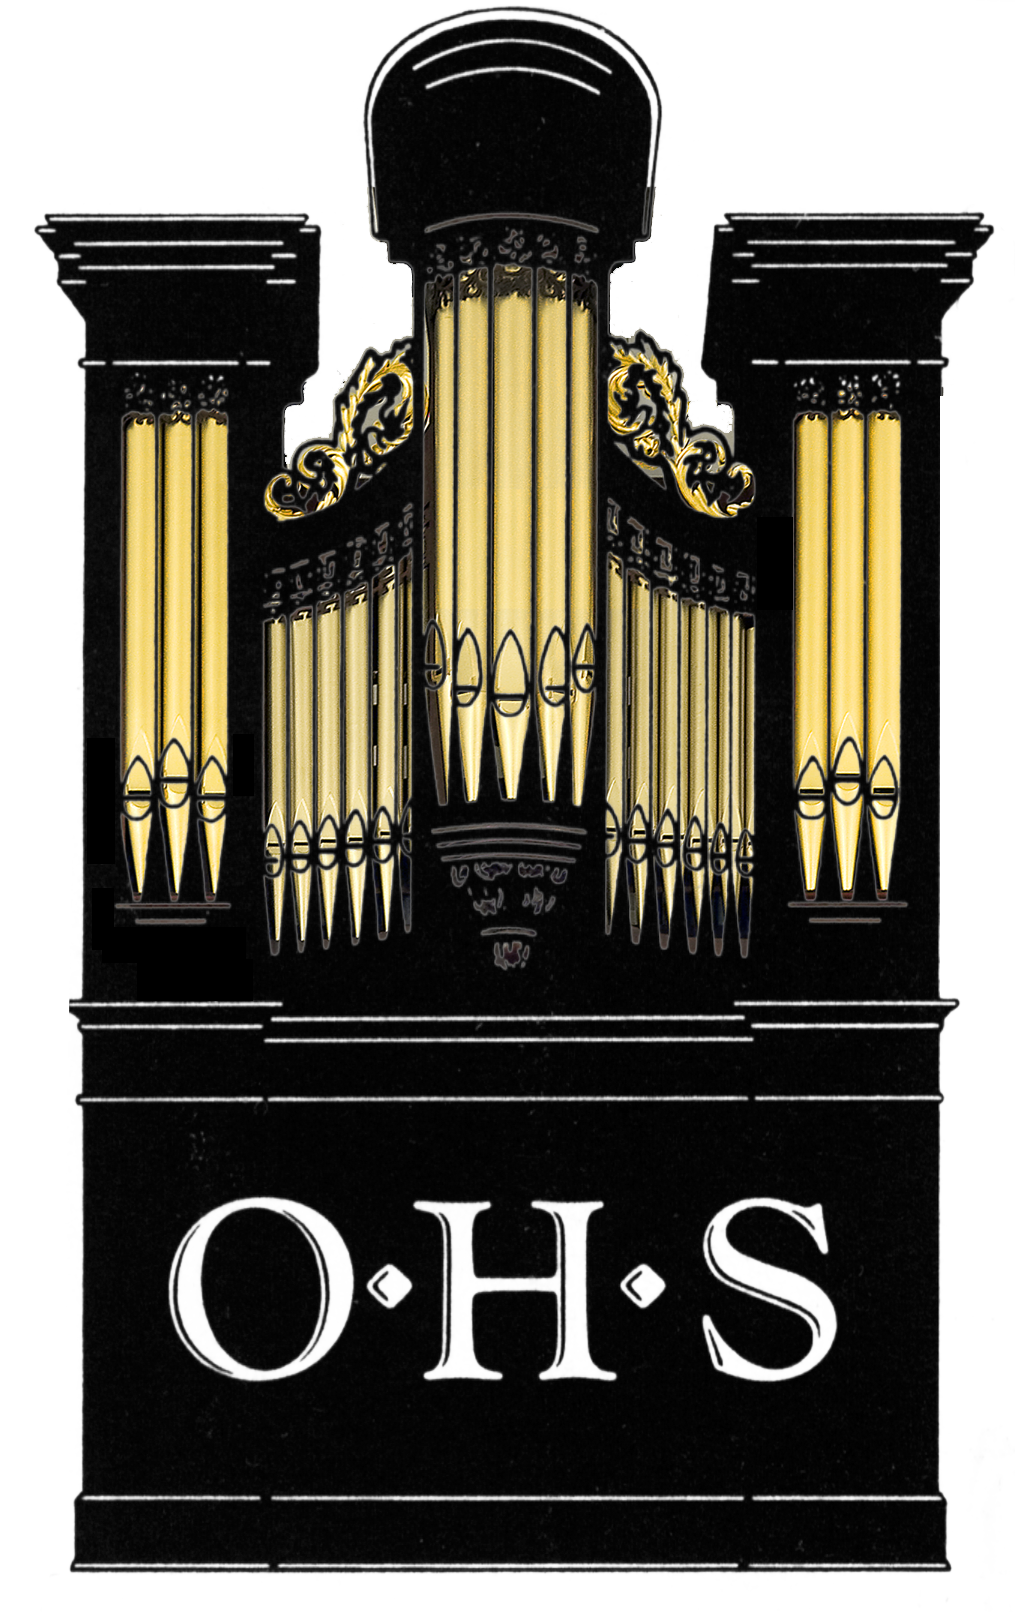 ohs-logo-w-color-16408-.png